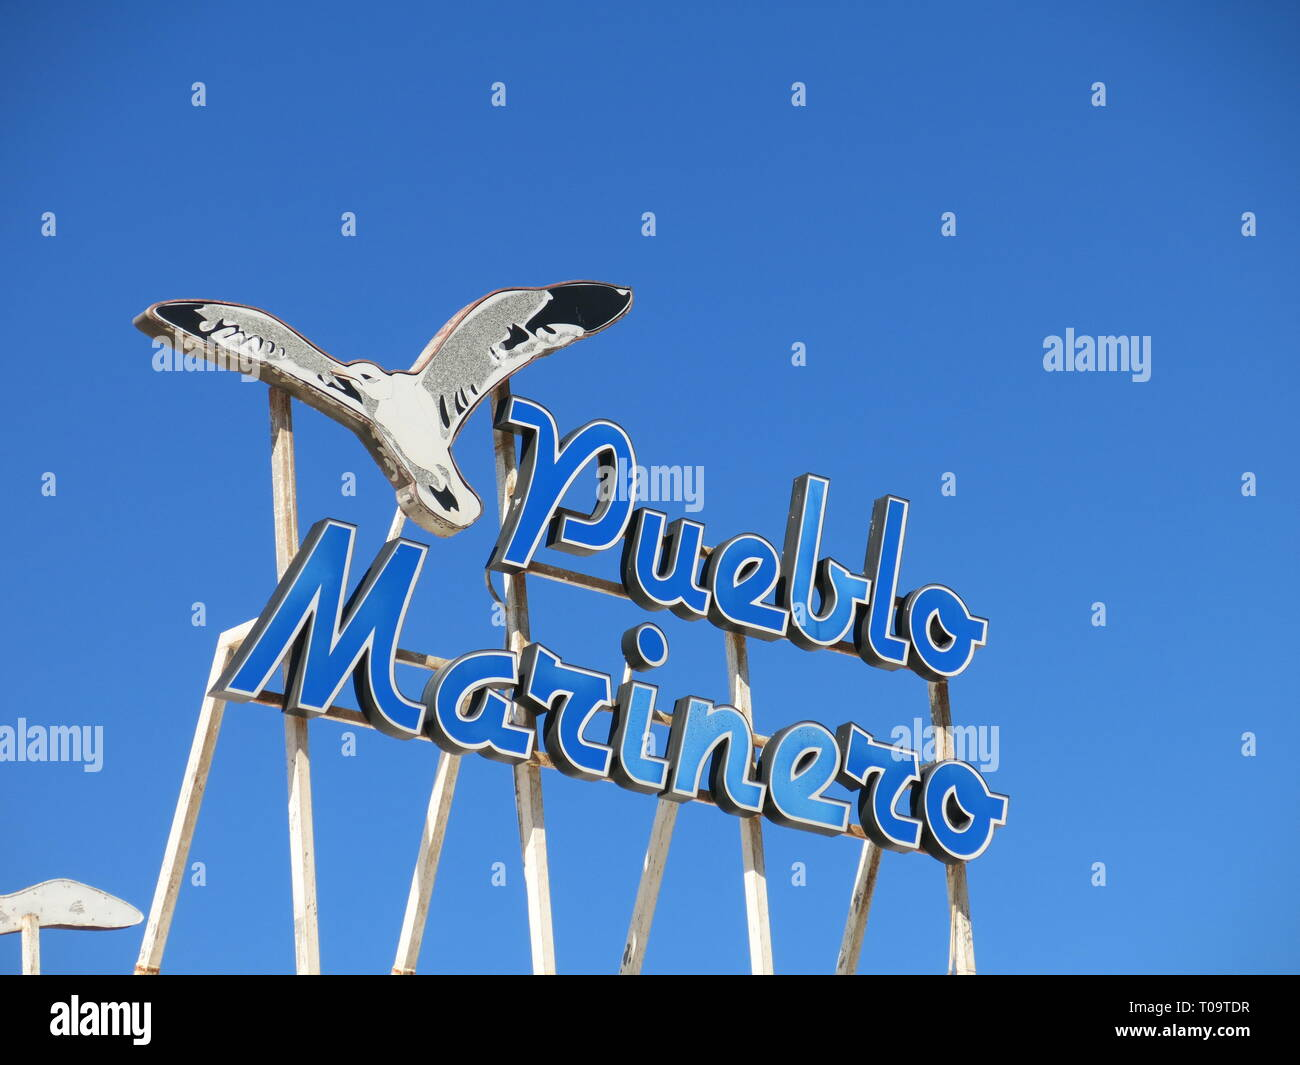 A large sign featuring a seagull and saying 'Pueblo Marinero' adorns the roof of a hotel at the Lanzarote resort of Marina Rubicon, Playa Blanca - Stock Image